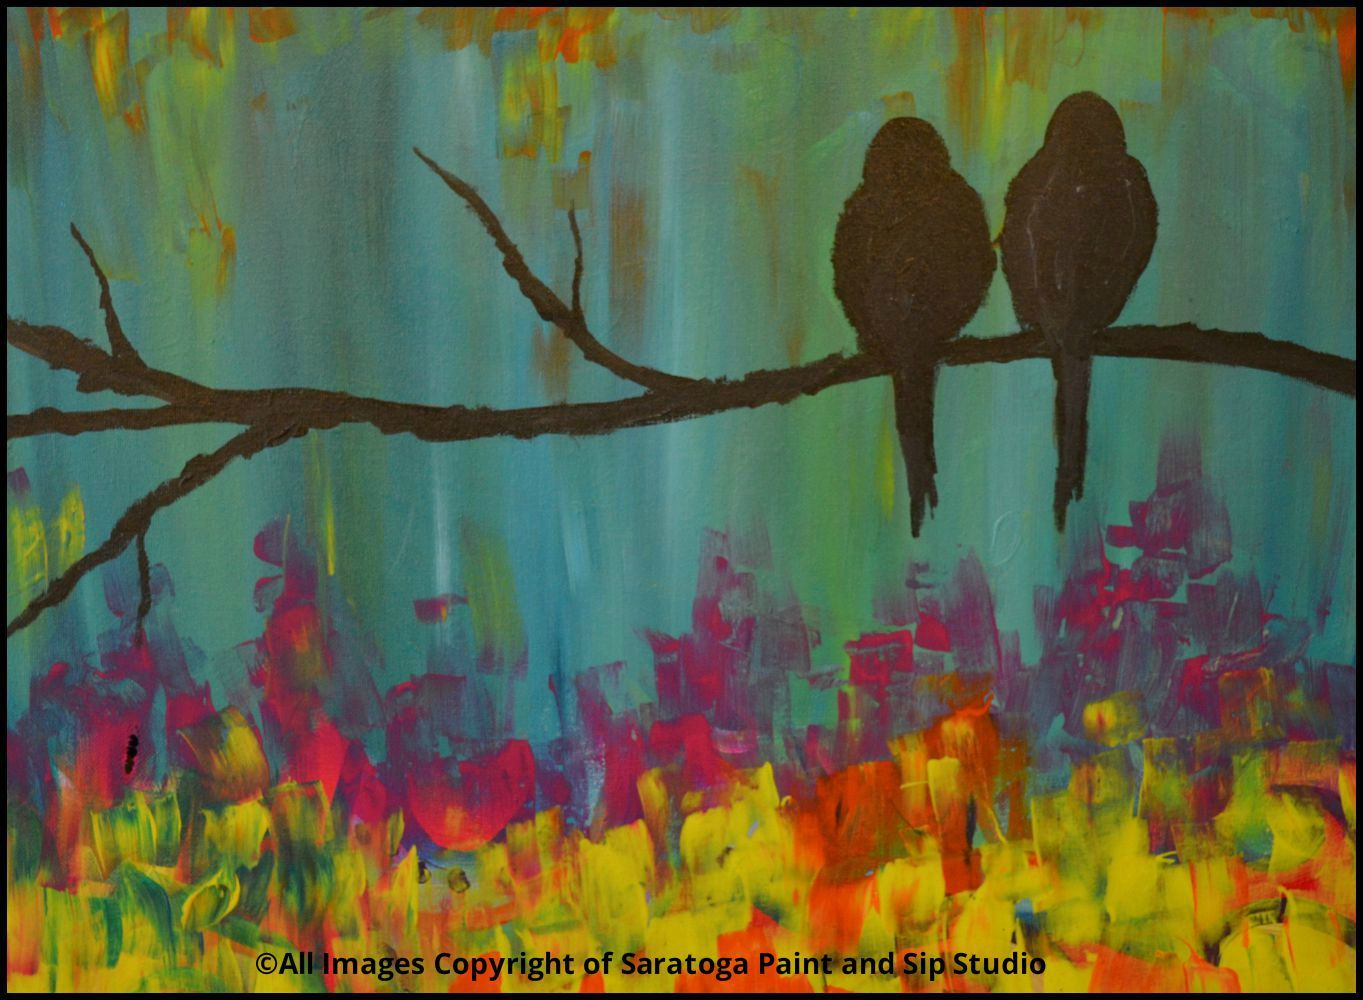 Hangin In A Tree At Saratoga Paint And Sip Studio We Love Birds